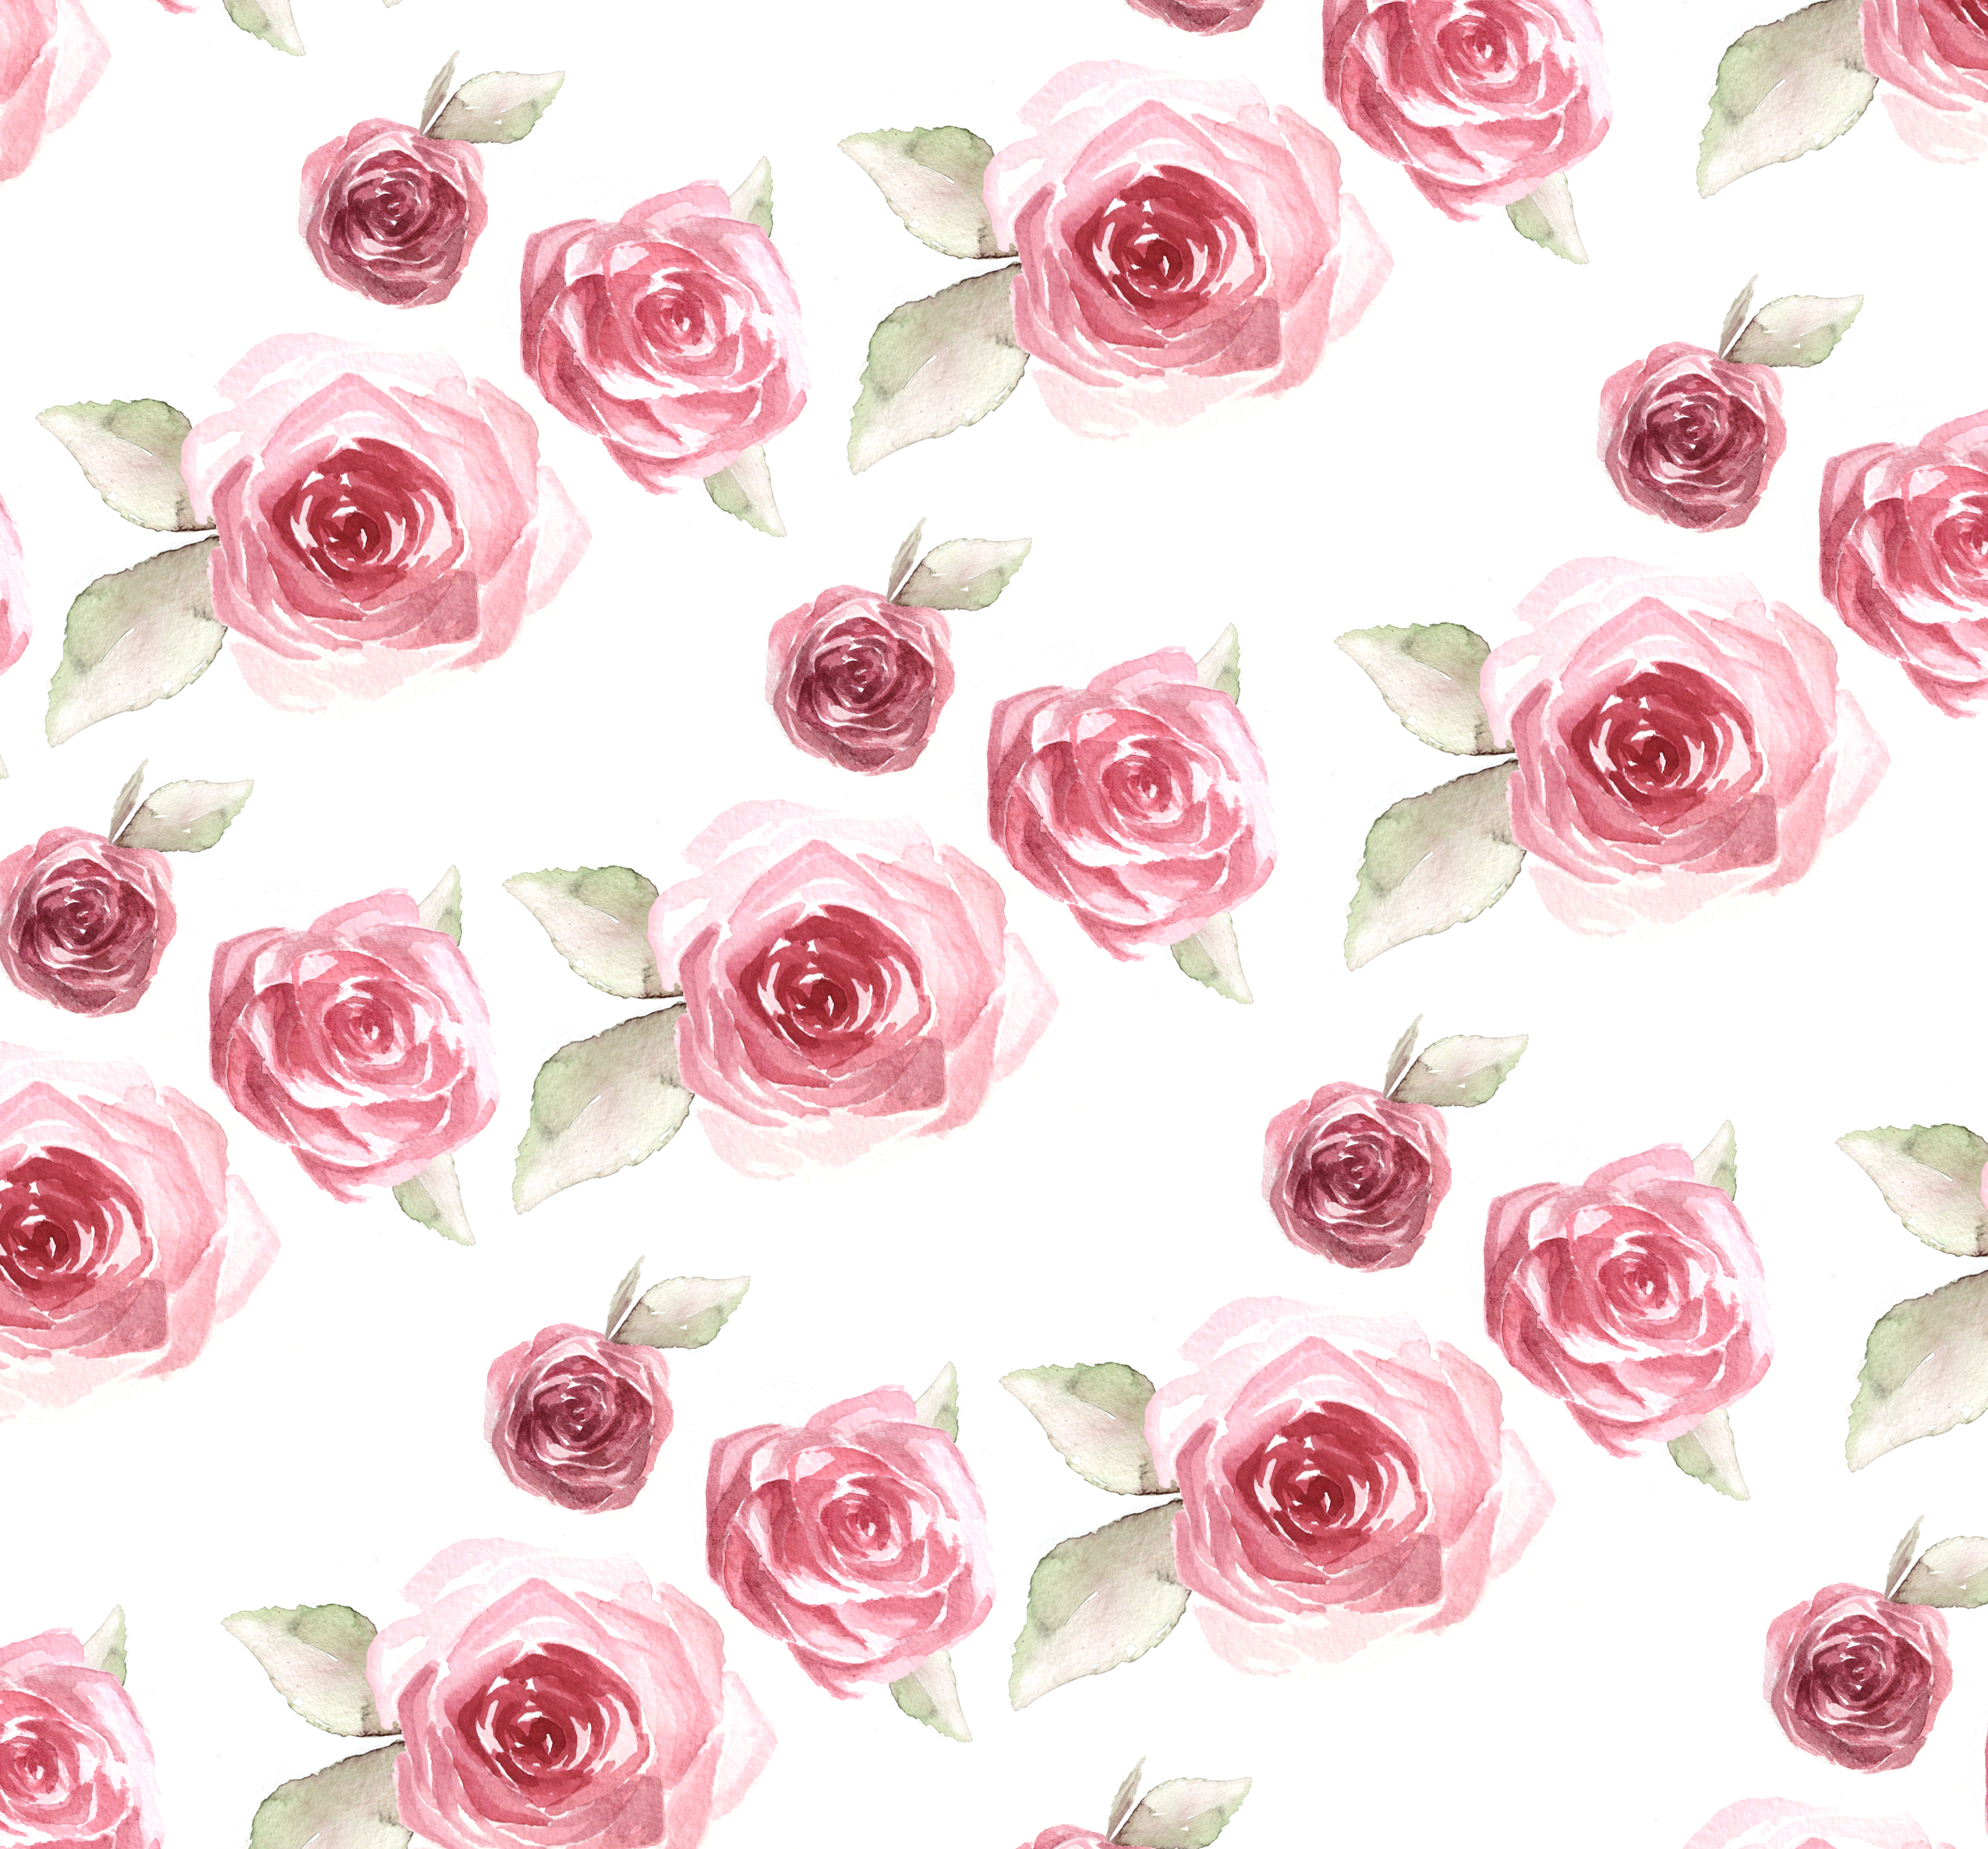 Pink flower pattern wallpaper high definition nature hd wallpaper pink flower pattern wallpaper high definition mightylinksfo